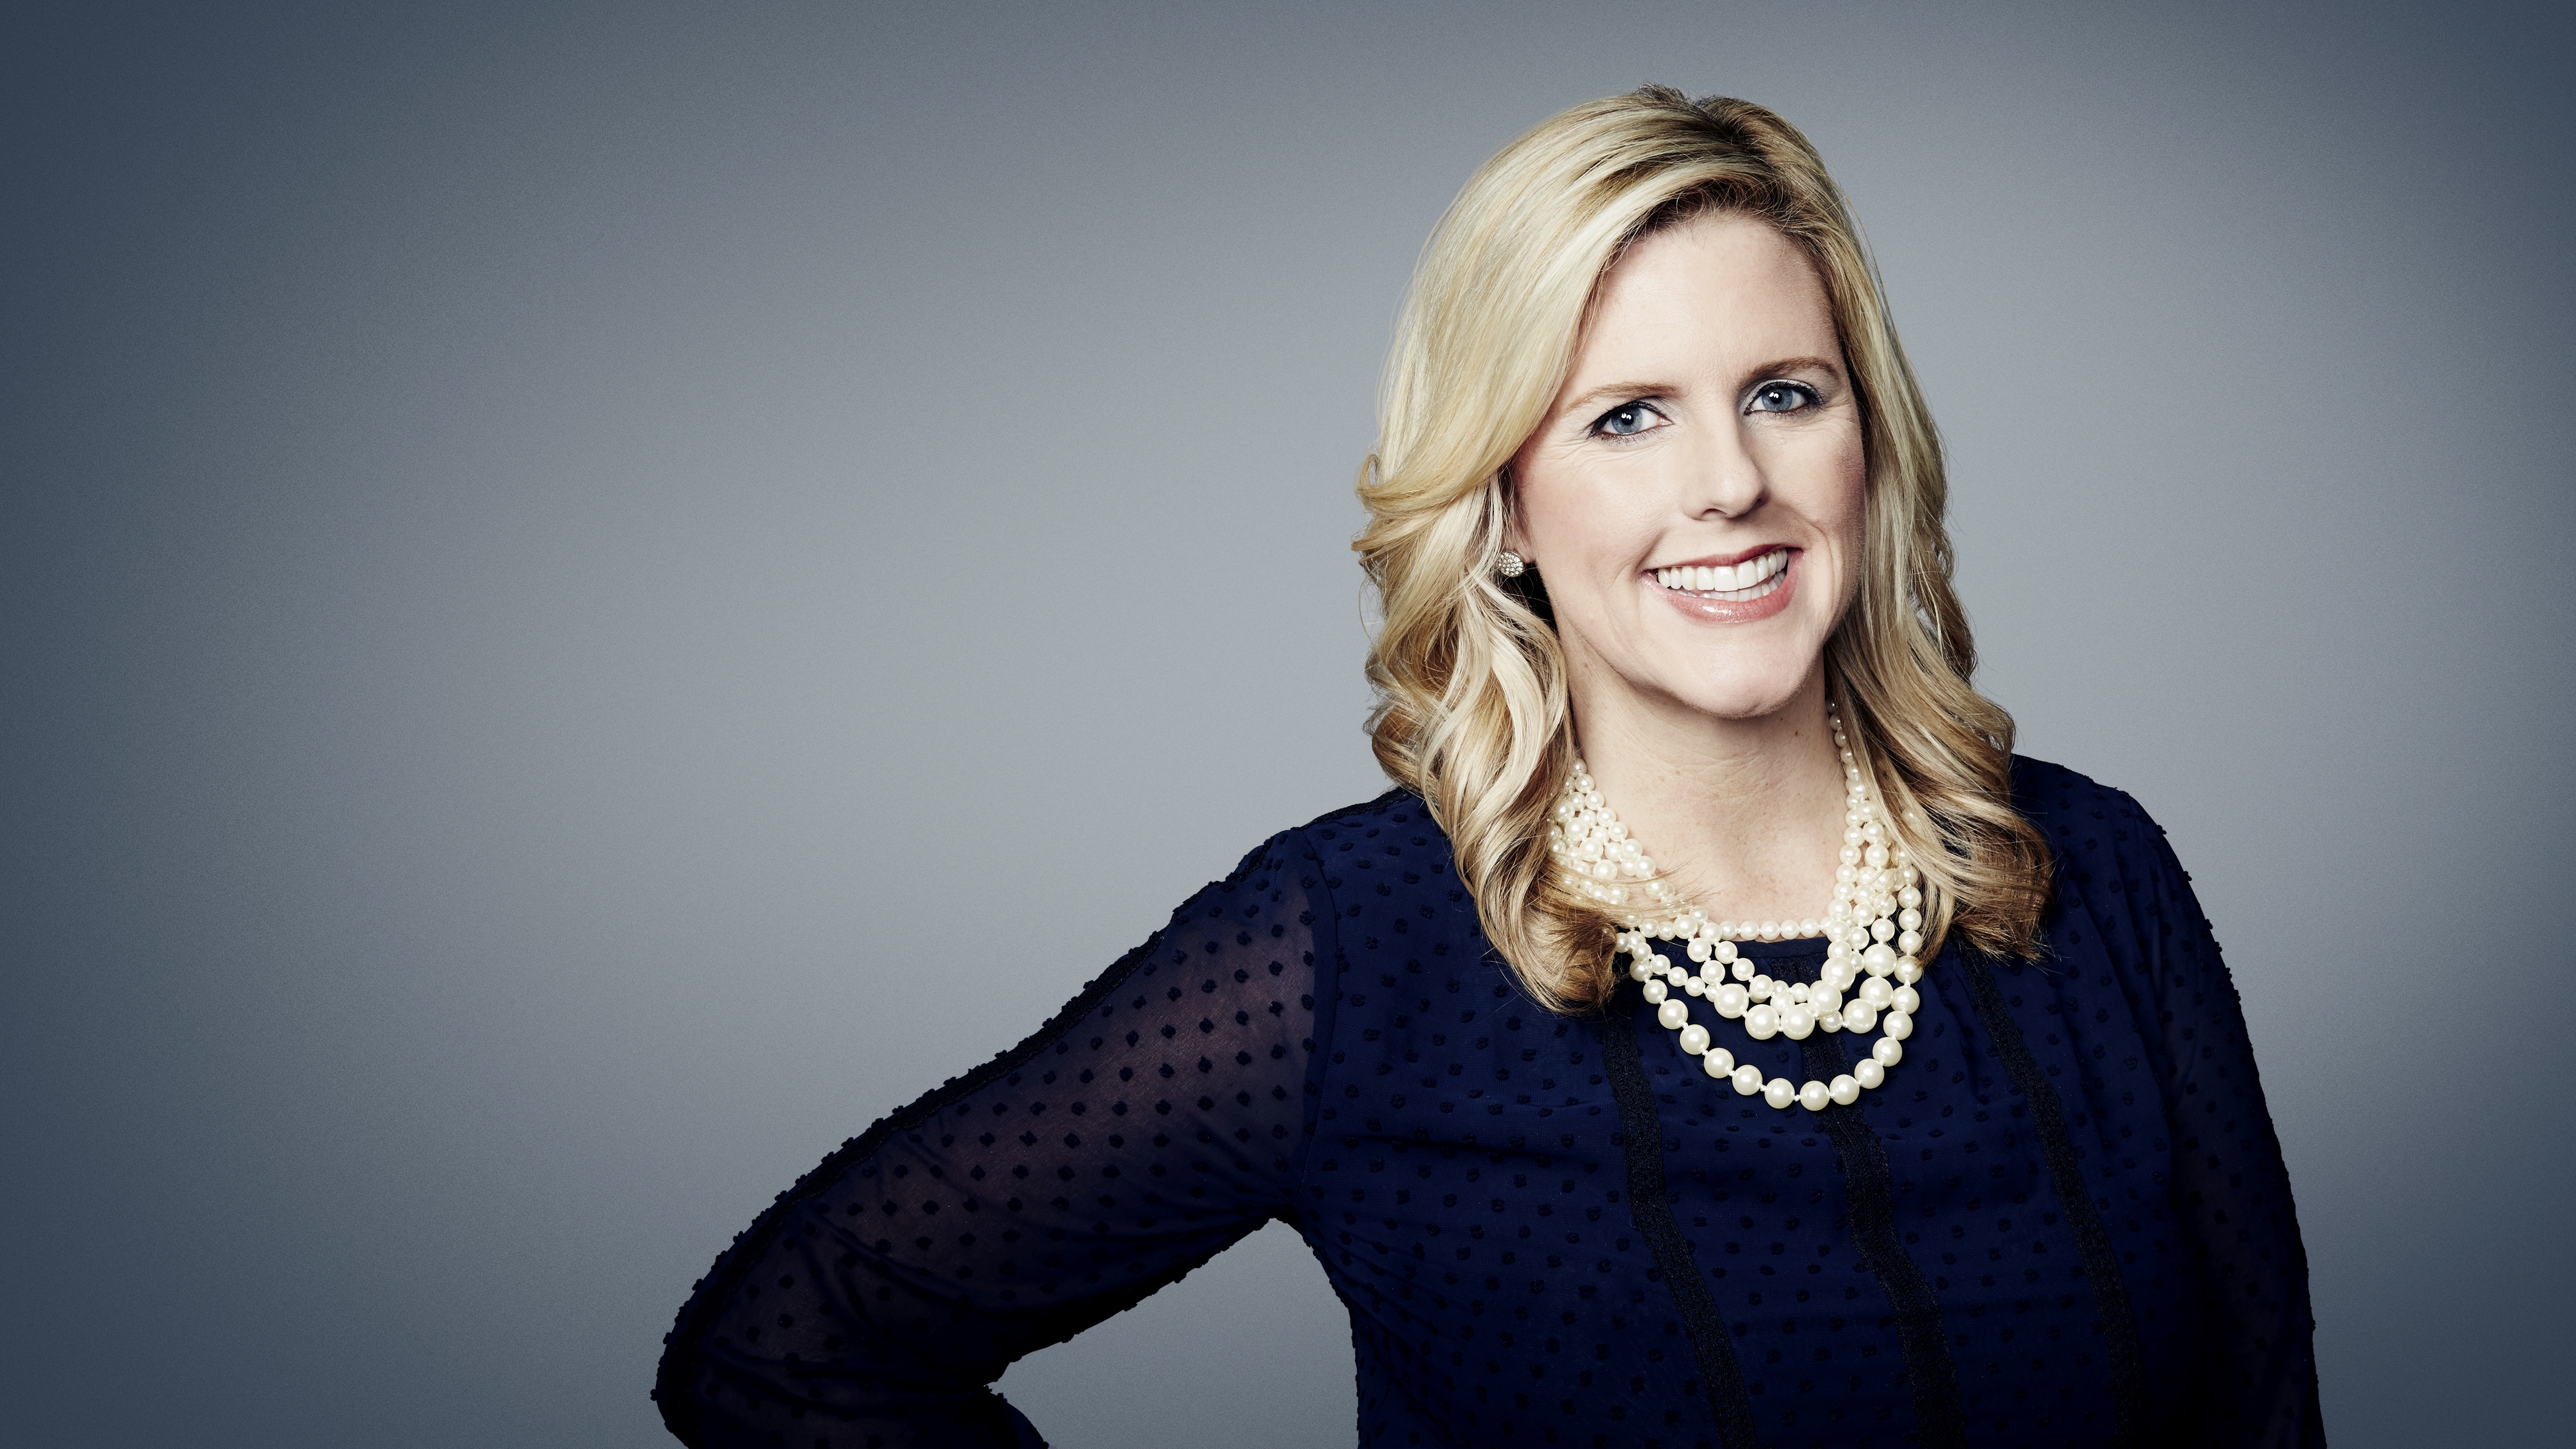 """Jill Adly is joining the Deseret News in the role of director of strategic reach and development. She has spent the past 18 years at CNN, most recently as the senior editorial producer for CNN's """"Situation Room With Wolf Blitzer."""""""